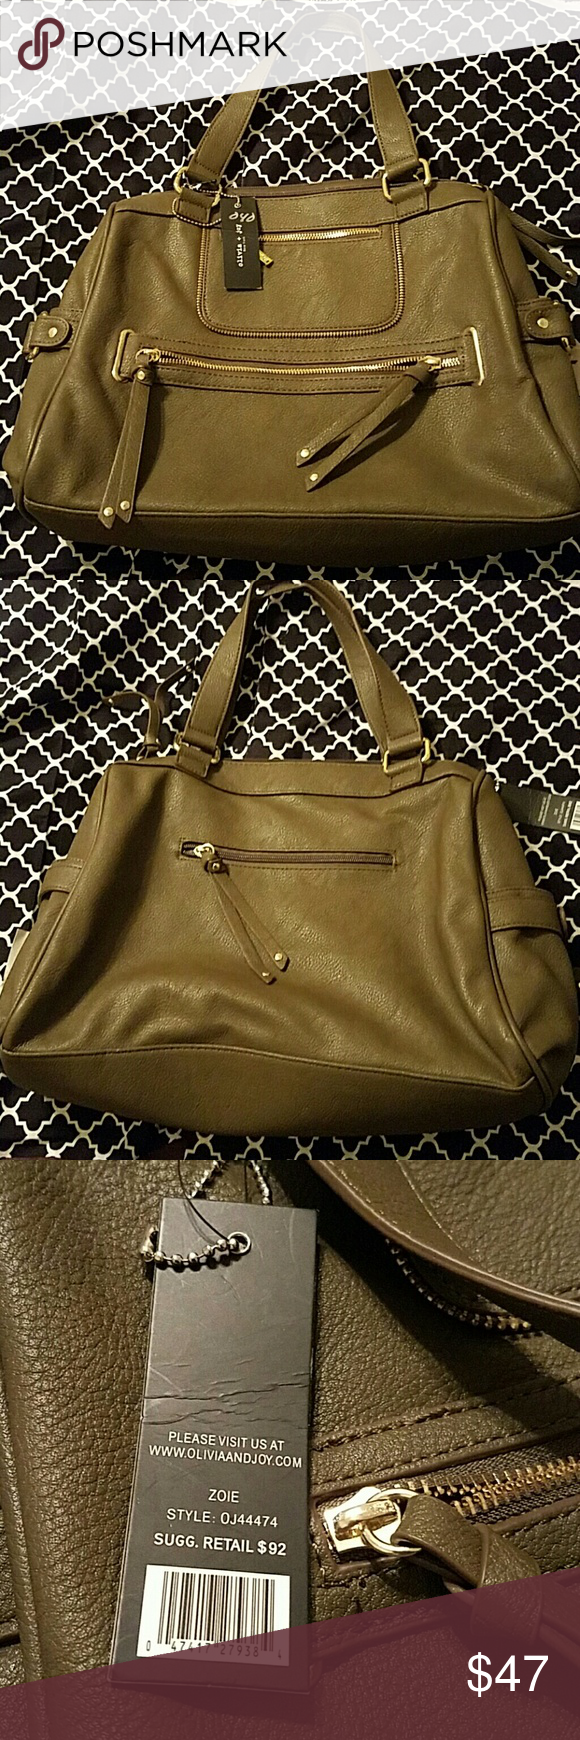 Olivia + Joy Olive Green Zoie handbag Brand new with tags Olive green tote with gold embellishments Olivia + Joy Bags Totes